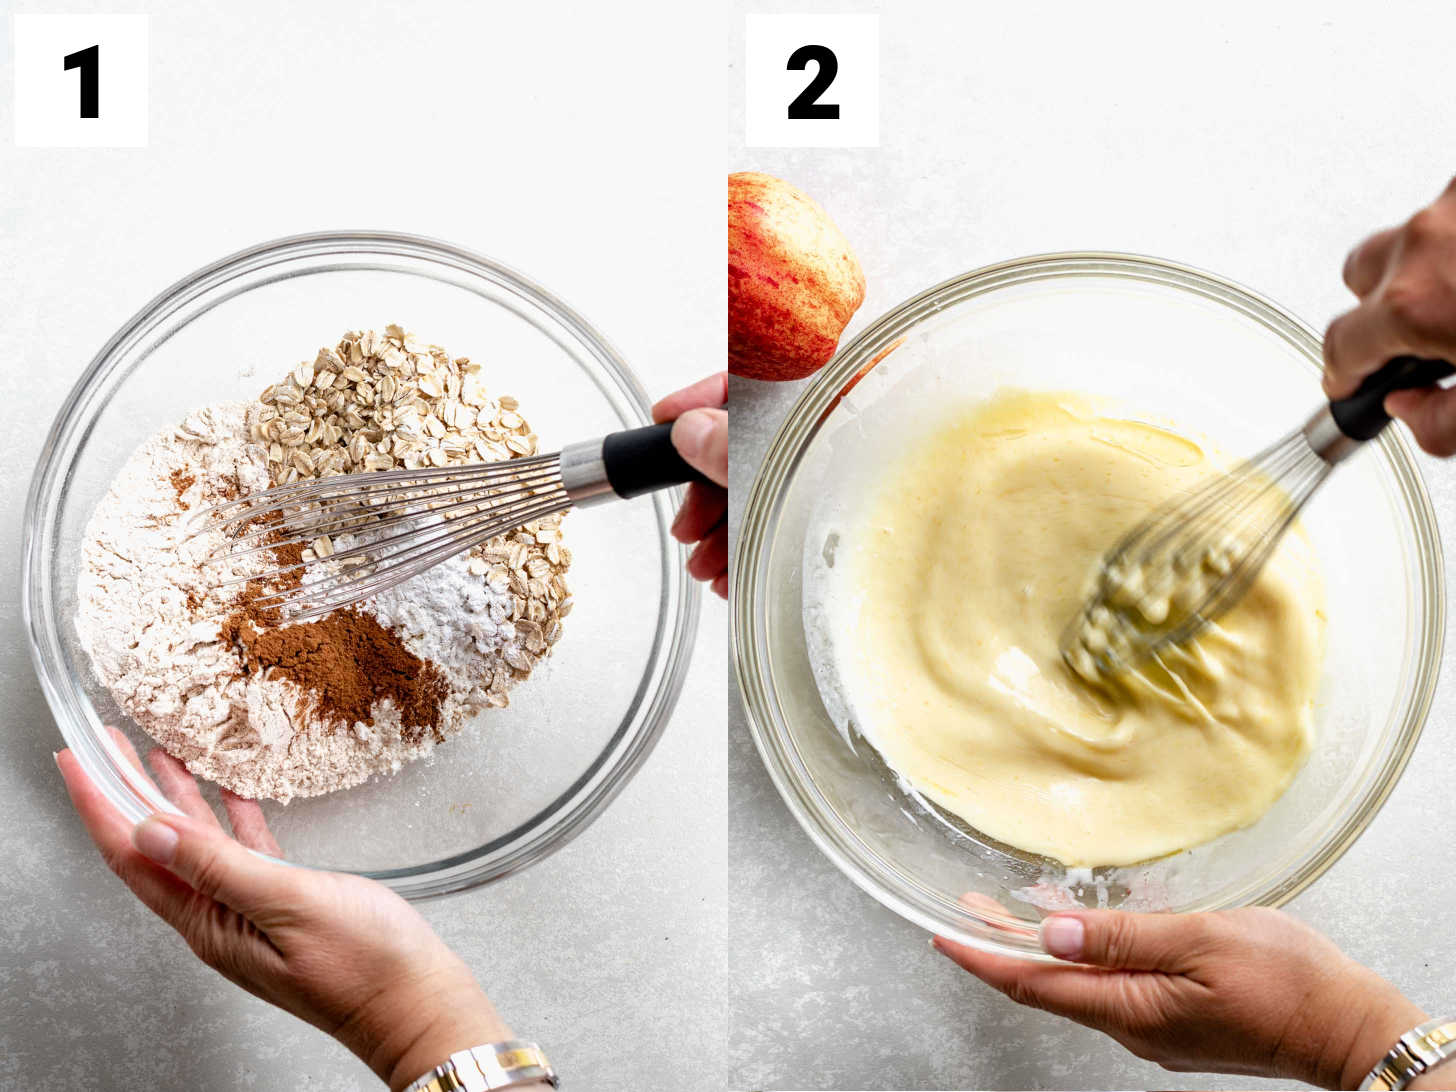 mix the dry ingredients and the wet ingredients in separate bowls